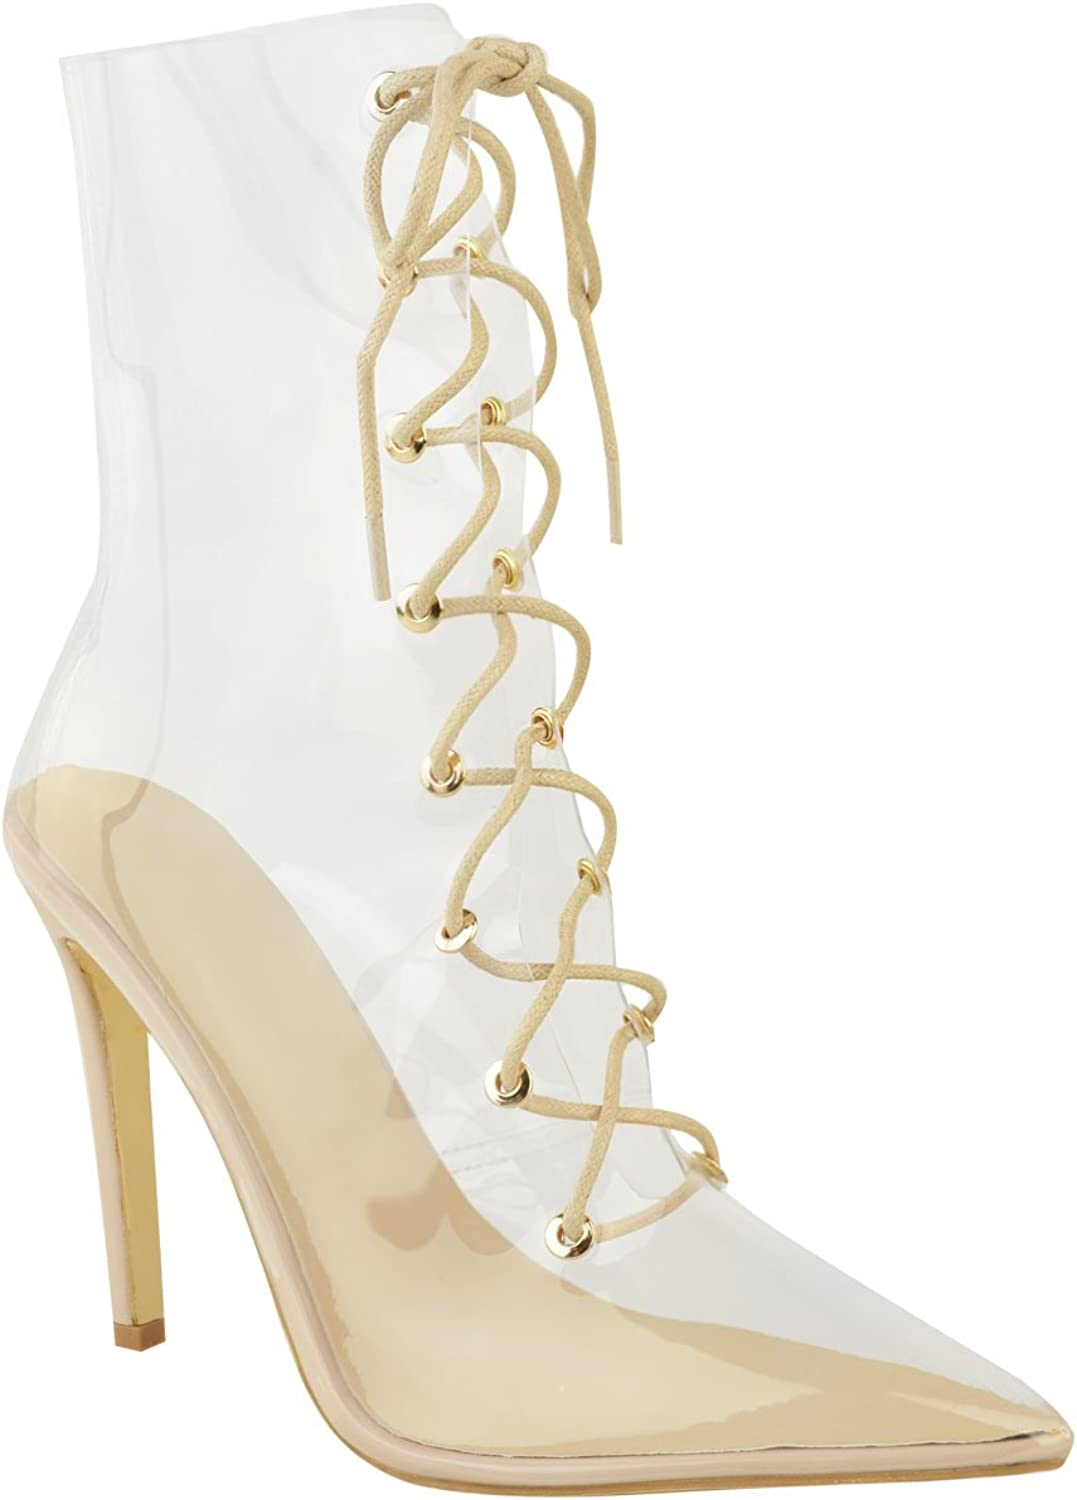 Fashion Thirsty Womens Lace up Clear Perspex High Heels Stilettos Ankle Calf Boots Size